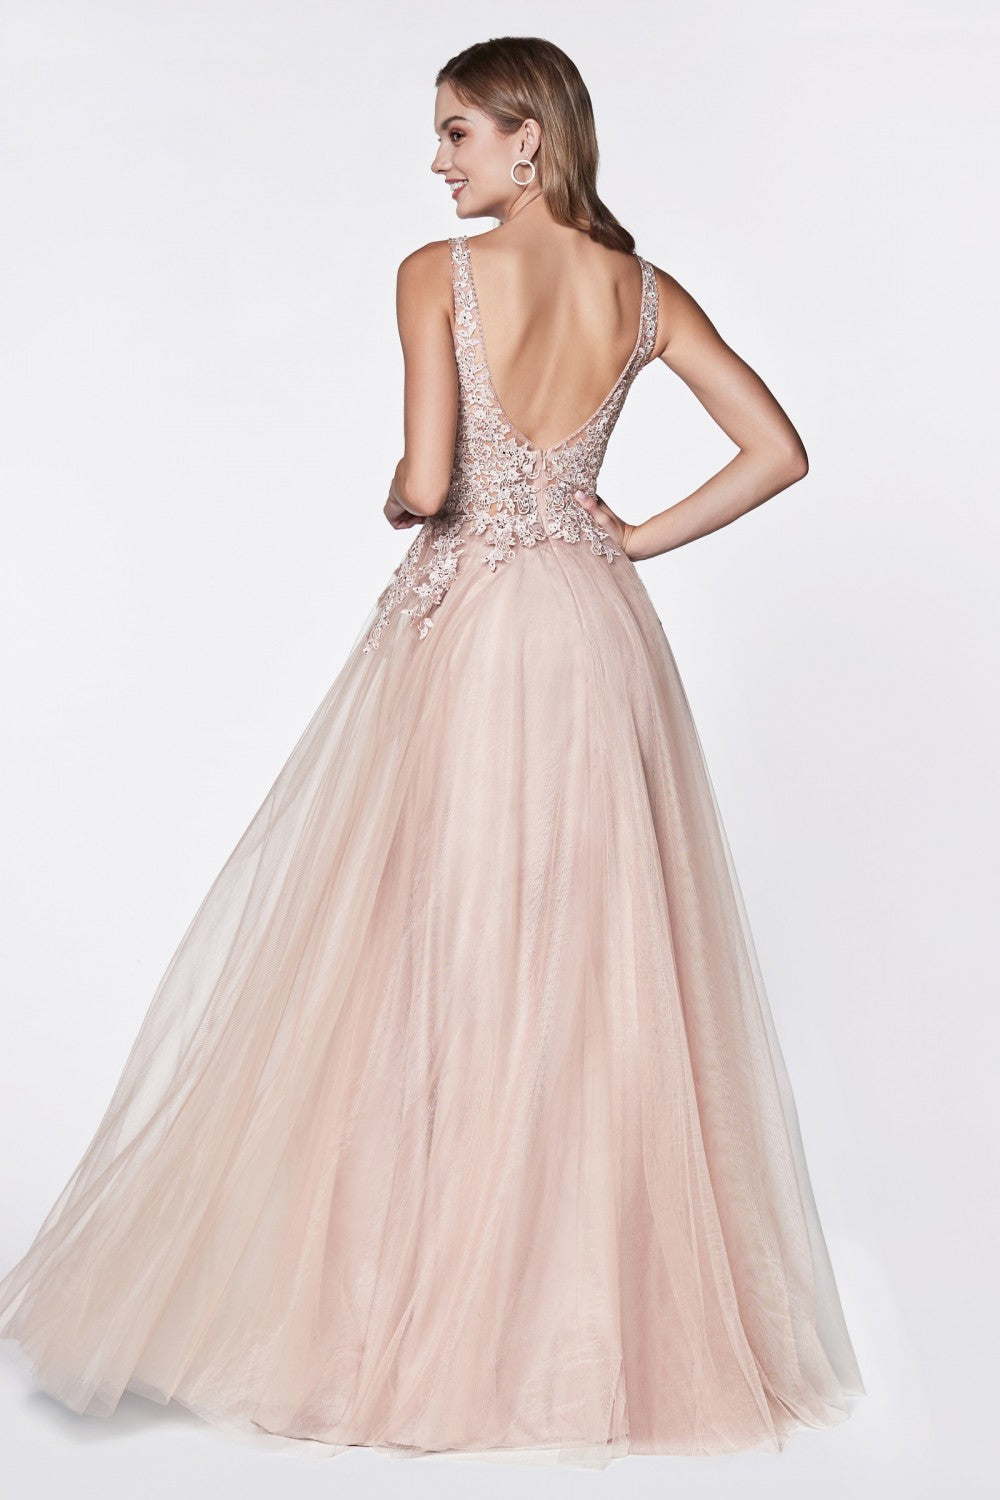 Cinderella Divine Chart I CD CJ 511 - Tulle A-Line Gown with Deep Neckline & Jeweled Lace Details - Diggz Prom